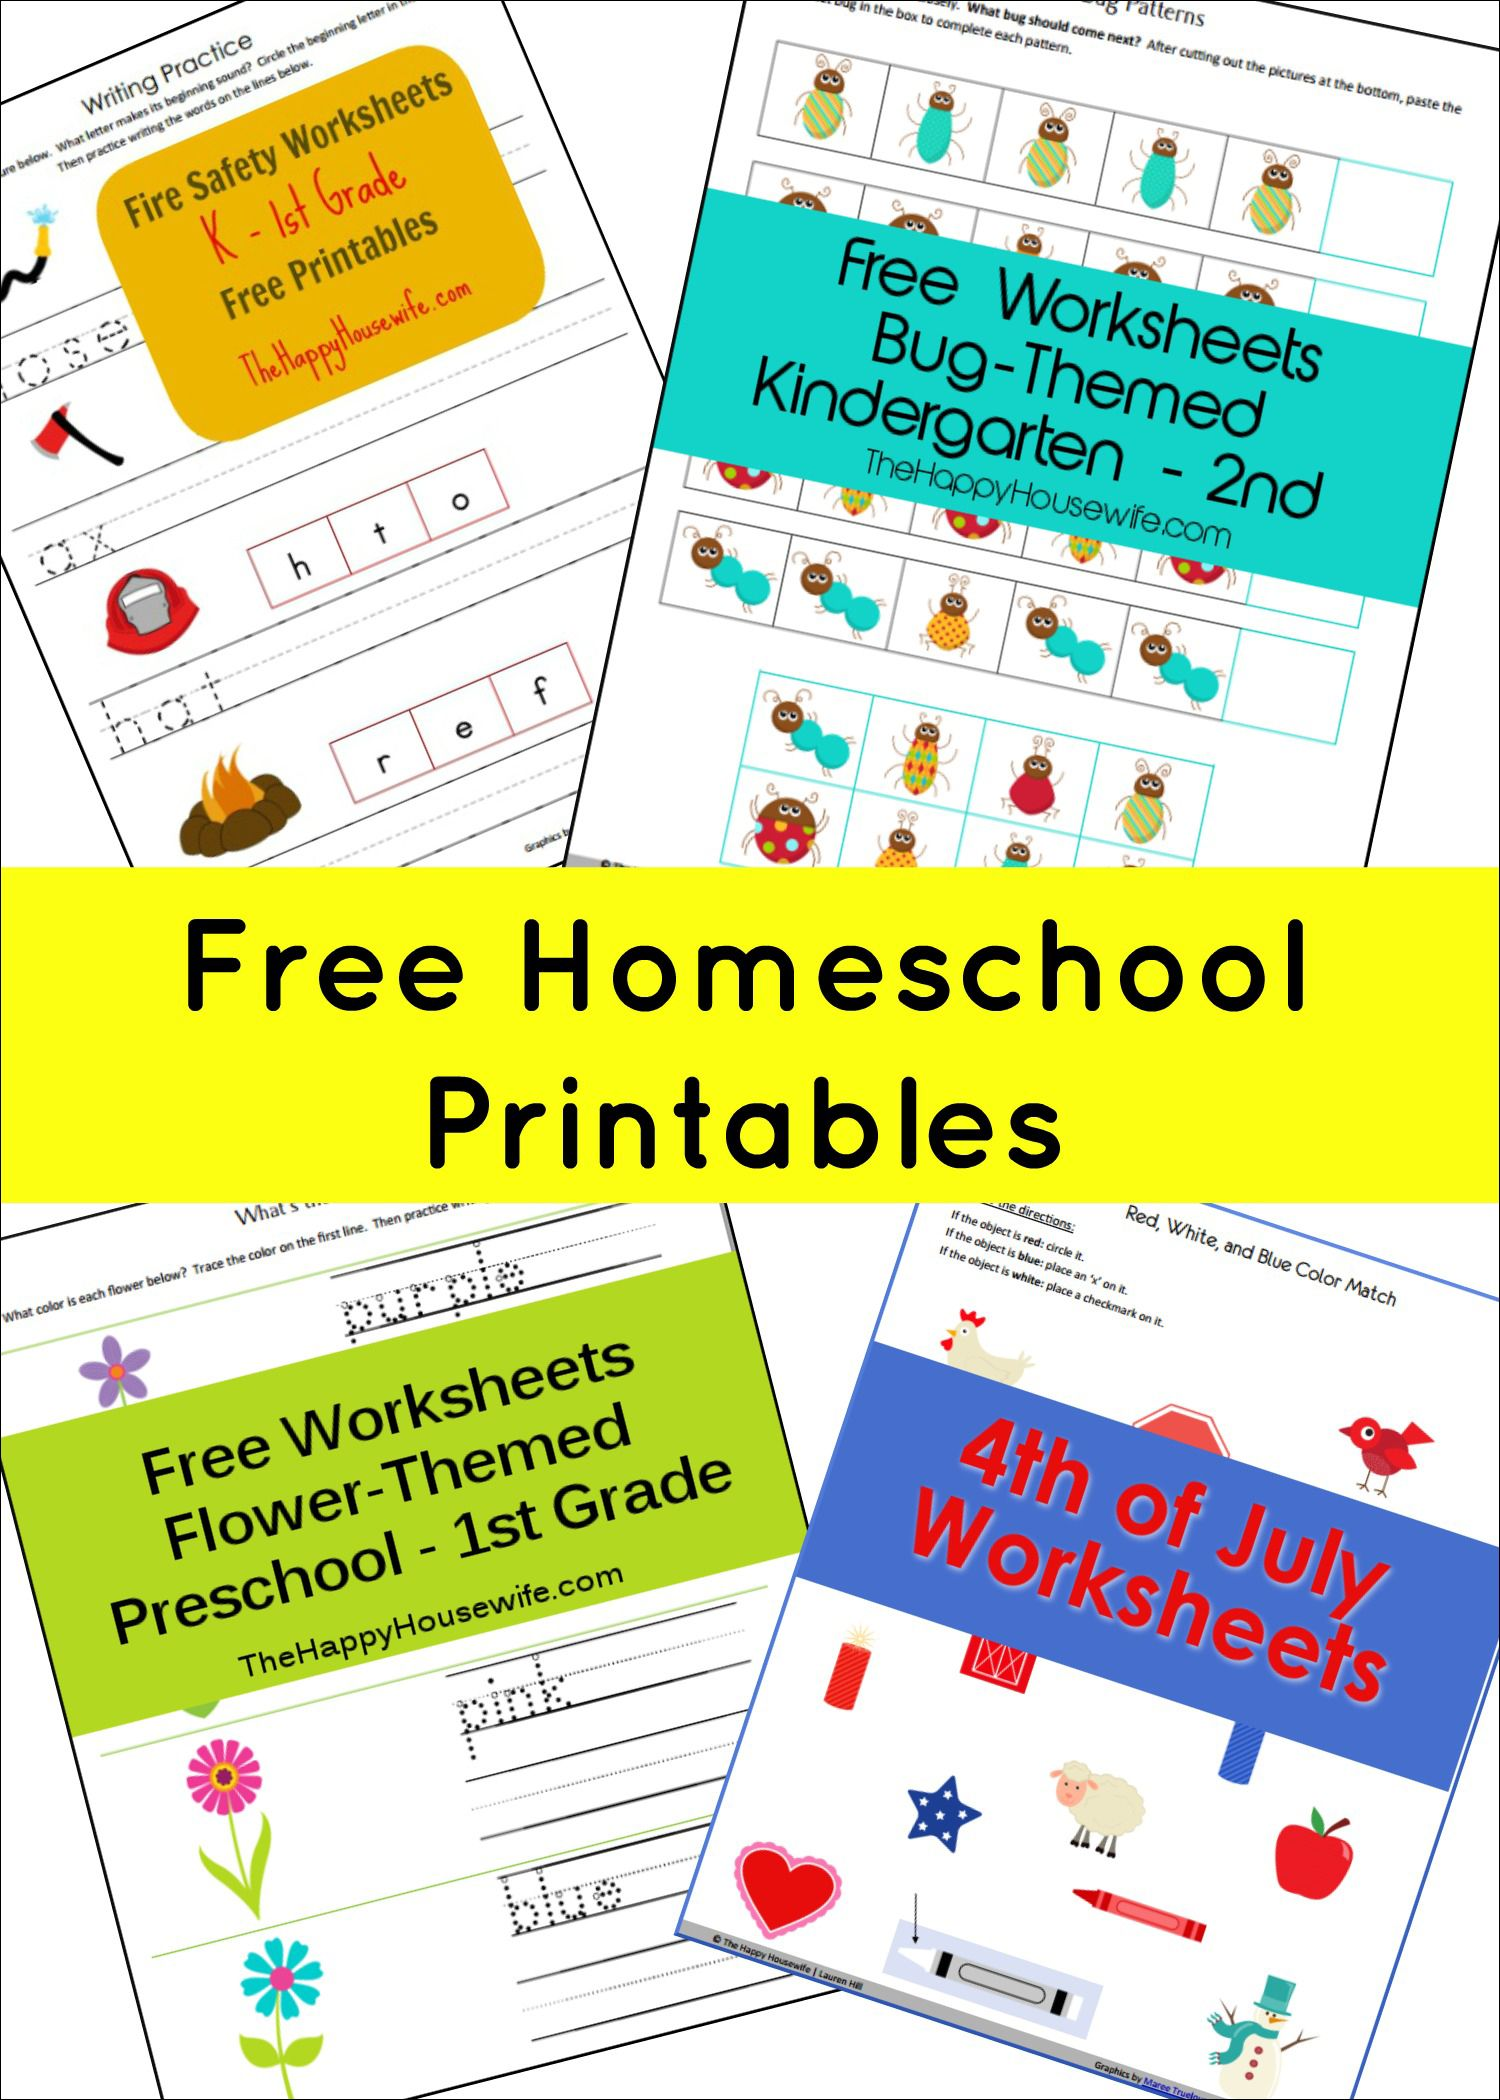 Free Educational Resources 6 Nature Handbooks 10 Week Poetry Course Maps More Free Homeschool Printables Homeschool Worksheets Free Homeschool Printables